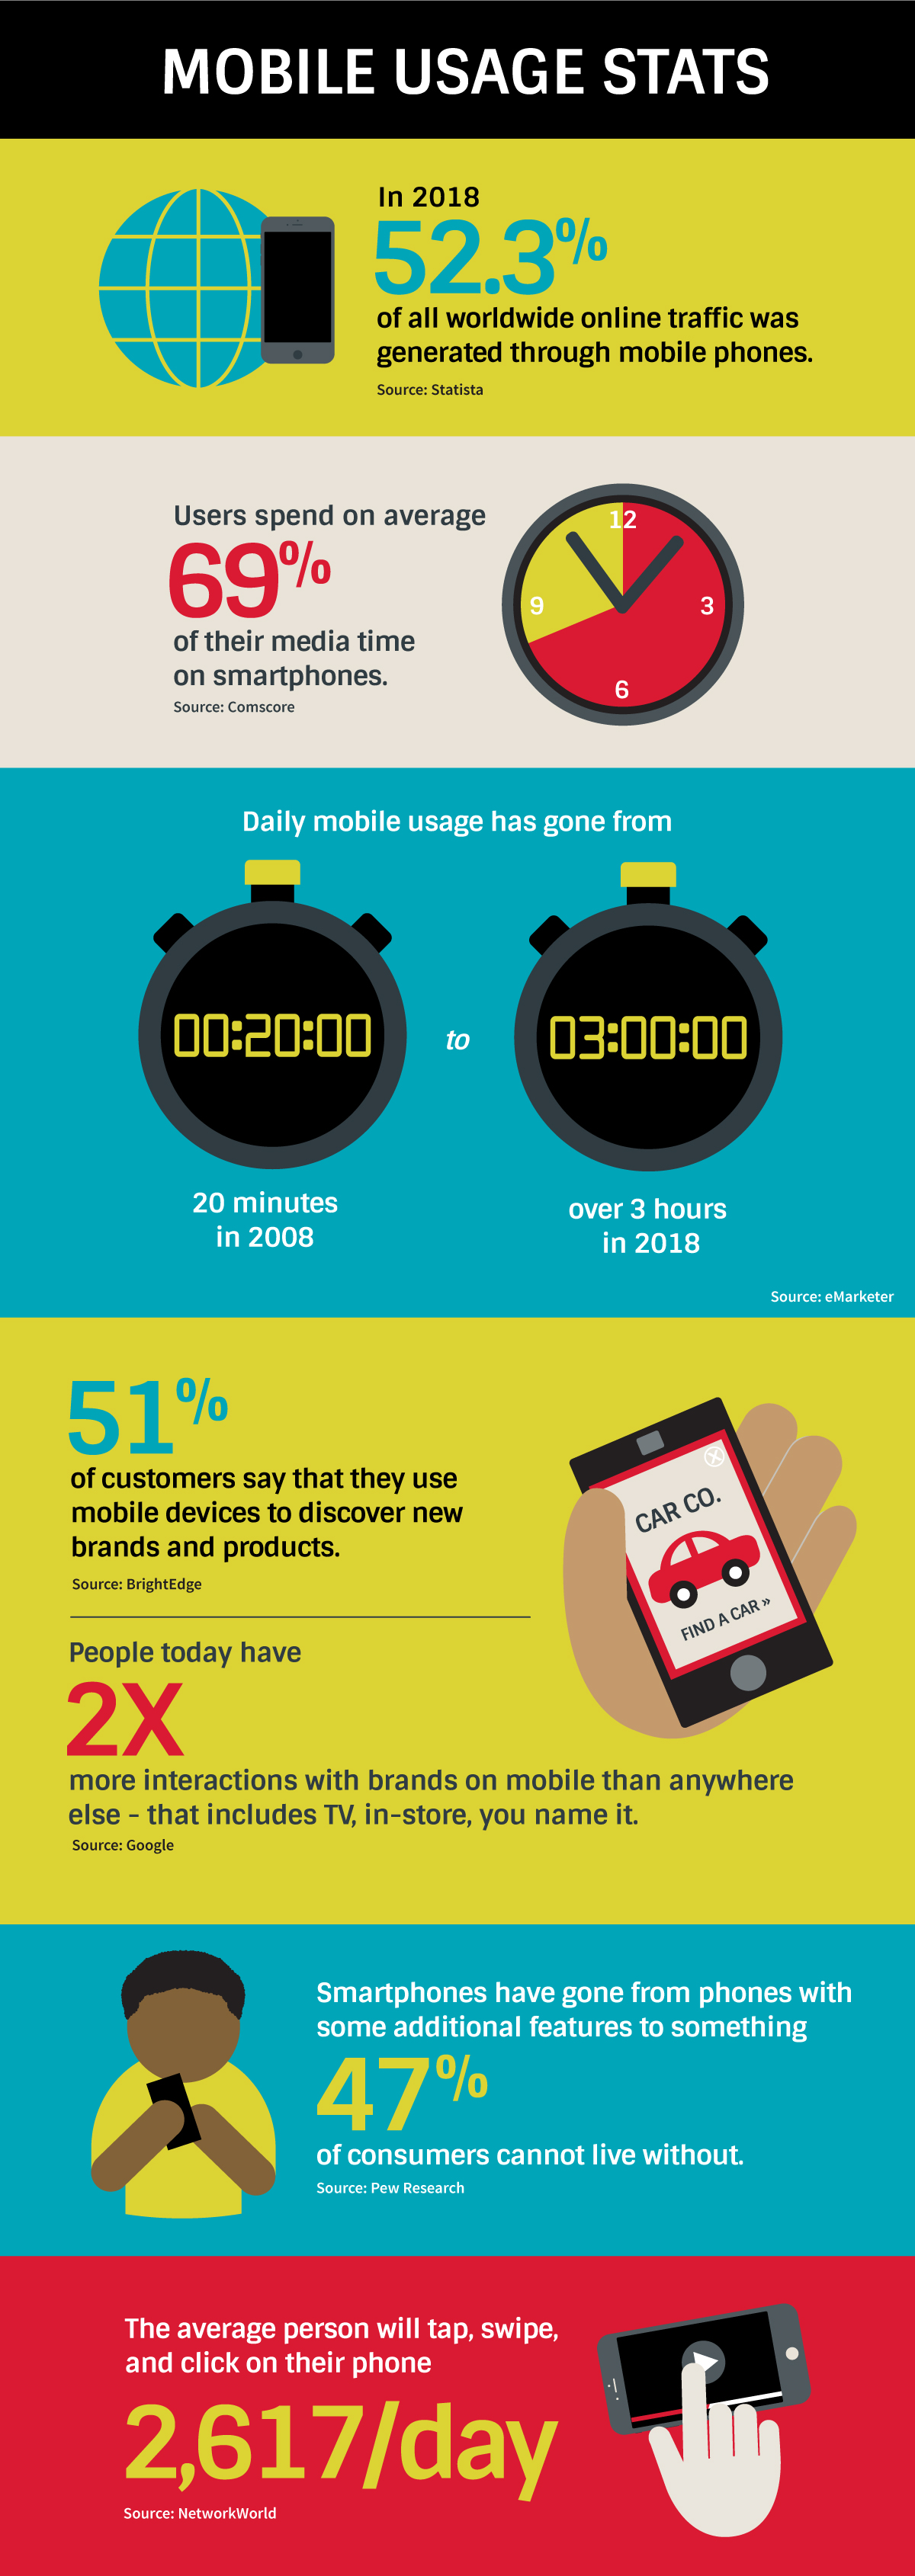 """Mobile-Usage-Stats - •In 2018, 52.3% of all worldwide online traffic was generated through mobile phones. (Statista) •Users spend on average 69% of their media time on smartphones. (Comscore) •Daily mobile usage has gone from 20 minutes in 2008 to over 3 hours in 2018. (eMarketer) •51% of customers say that they use mobile devices to discover new brands and products. (BrightEdge) •People today have 2X more interactions with brands on mobile than anywhere else - that includes TV, in-store, you name it. (Google) •Smartphones have gone from """"phones with some additional features"""" to """"something 47% of consumers cannot live without."""" (Pew Research) •The average person will tap, swipe, and click on their phone 2,617 times a day. (NetworkWorld)"""